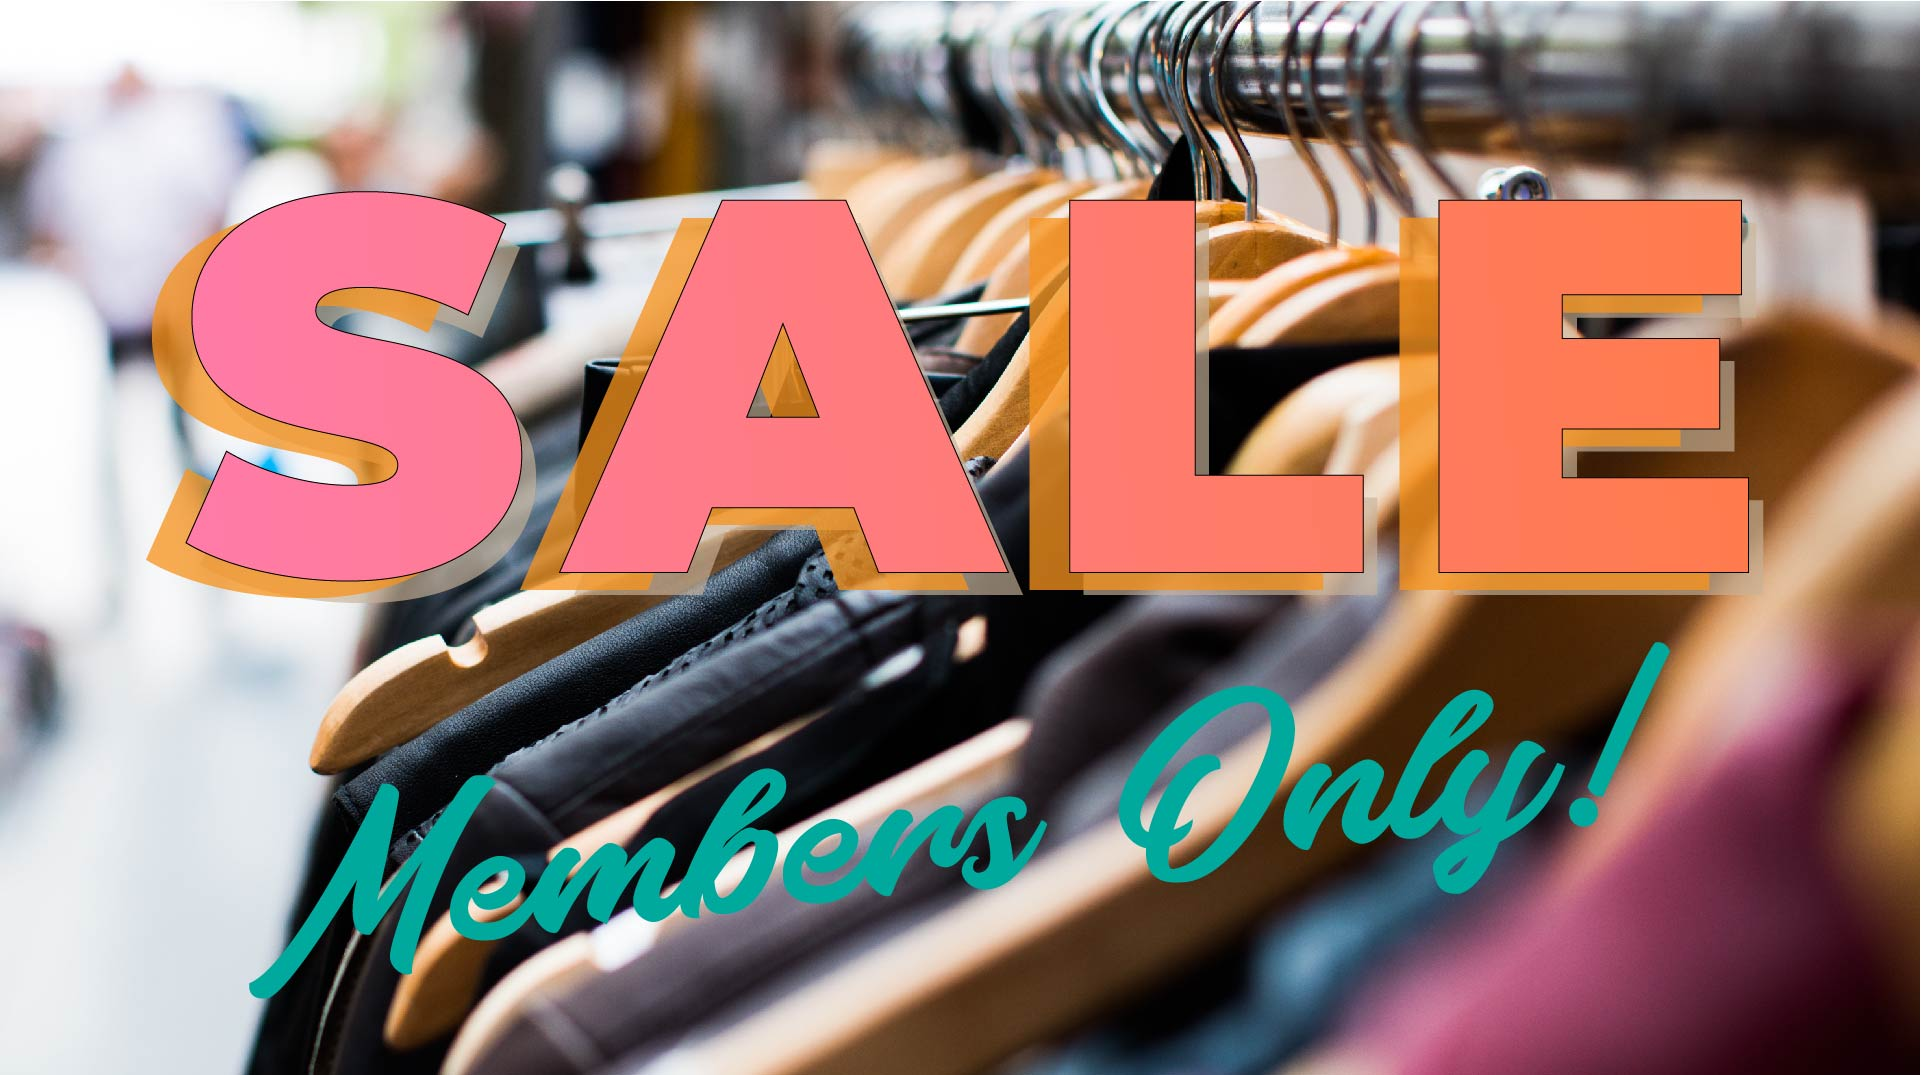 Sidewalk Sale - Valhalla Tampa - Members